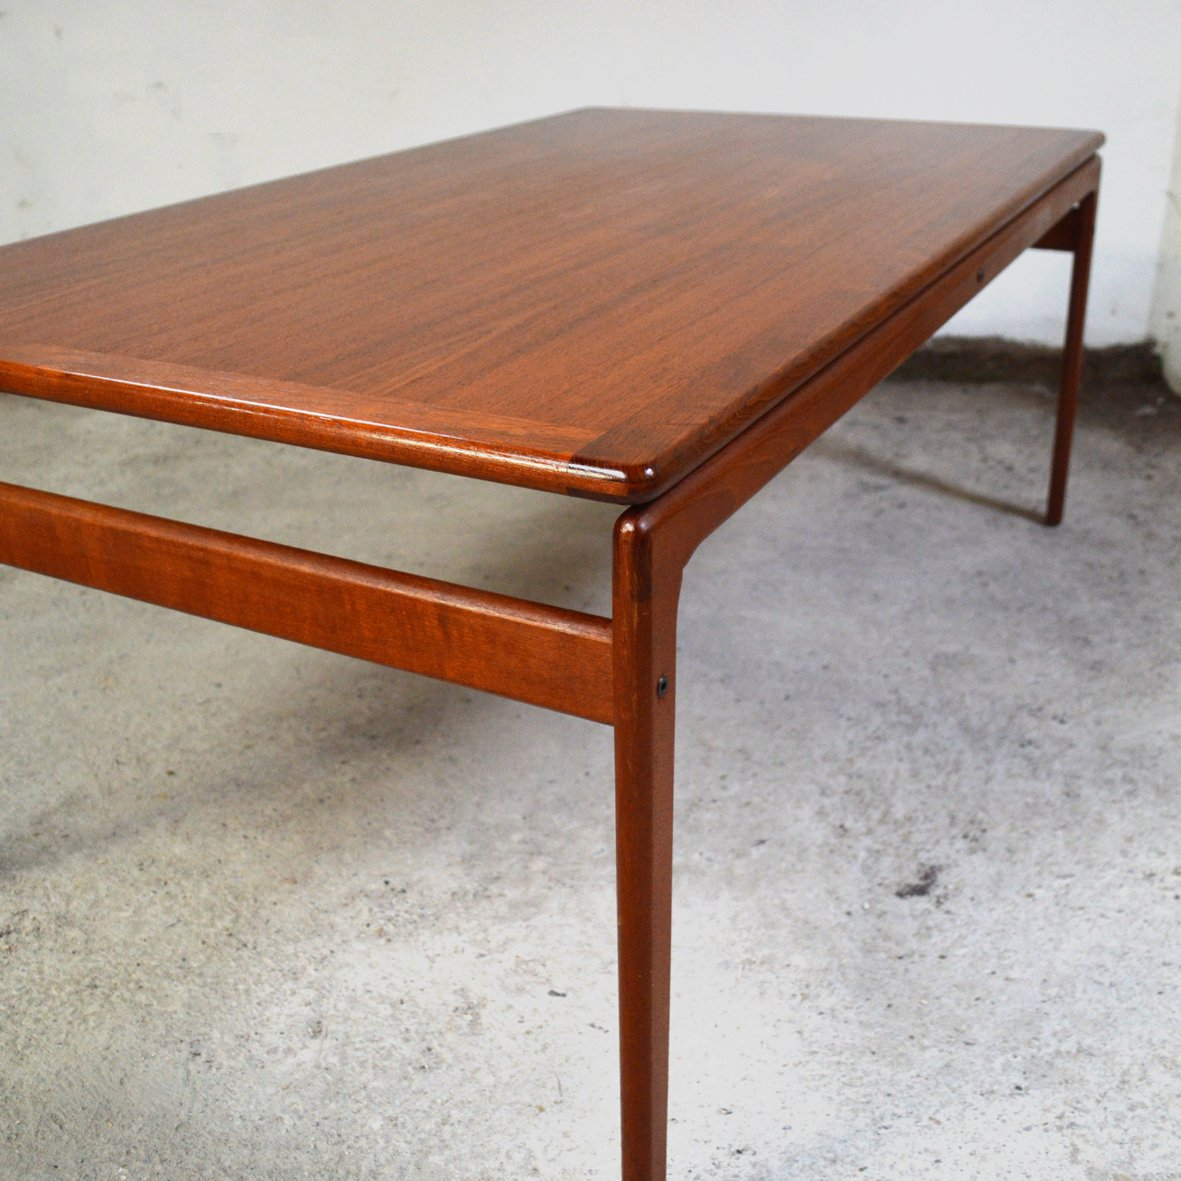 Danish Teak Coffee Table From Trioh 1970s For Sale At Pamono